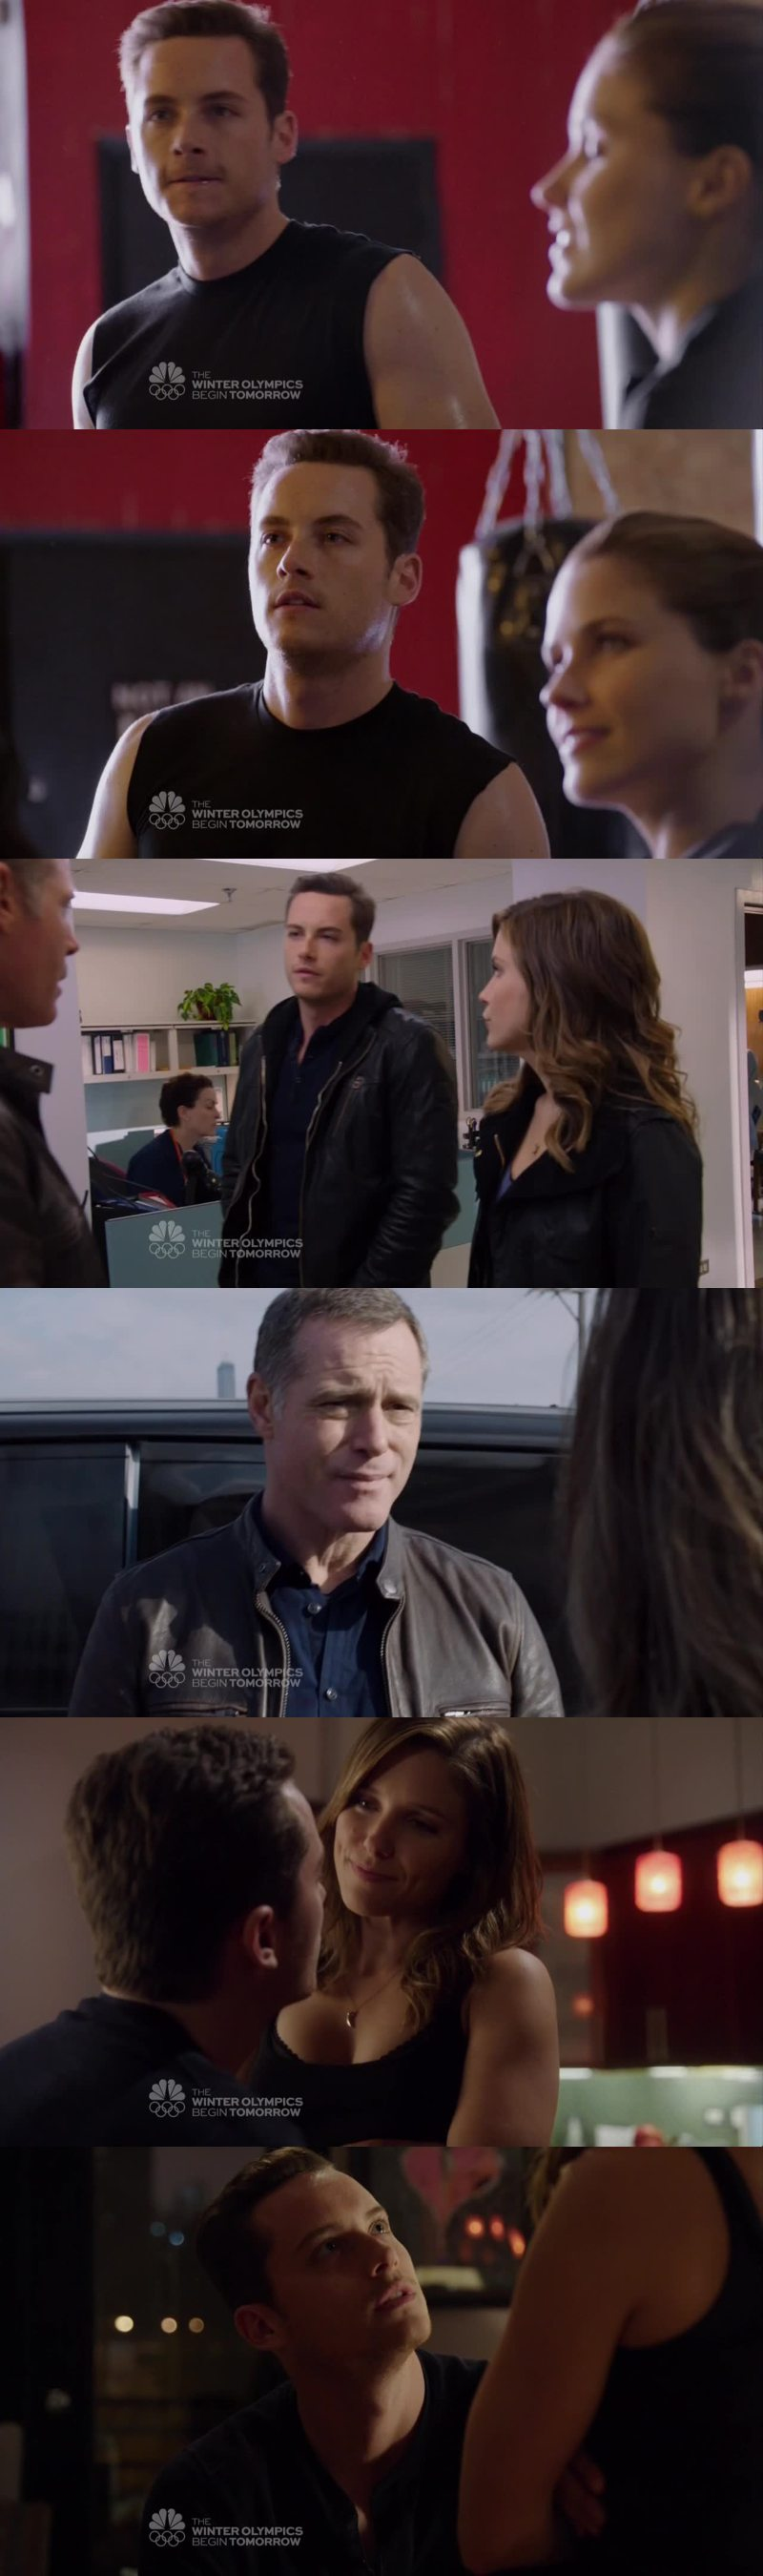 I want you too together linstead, no matter what voight say